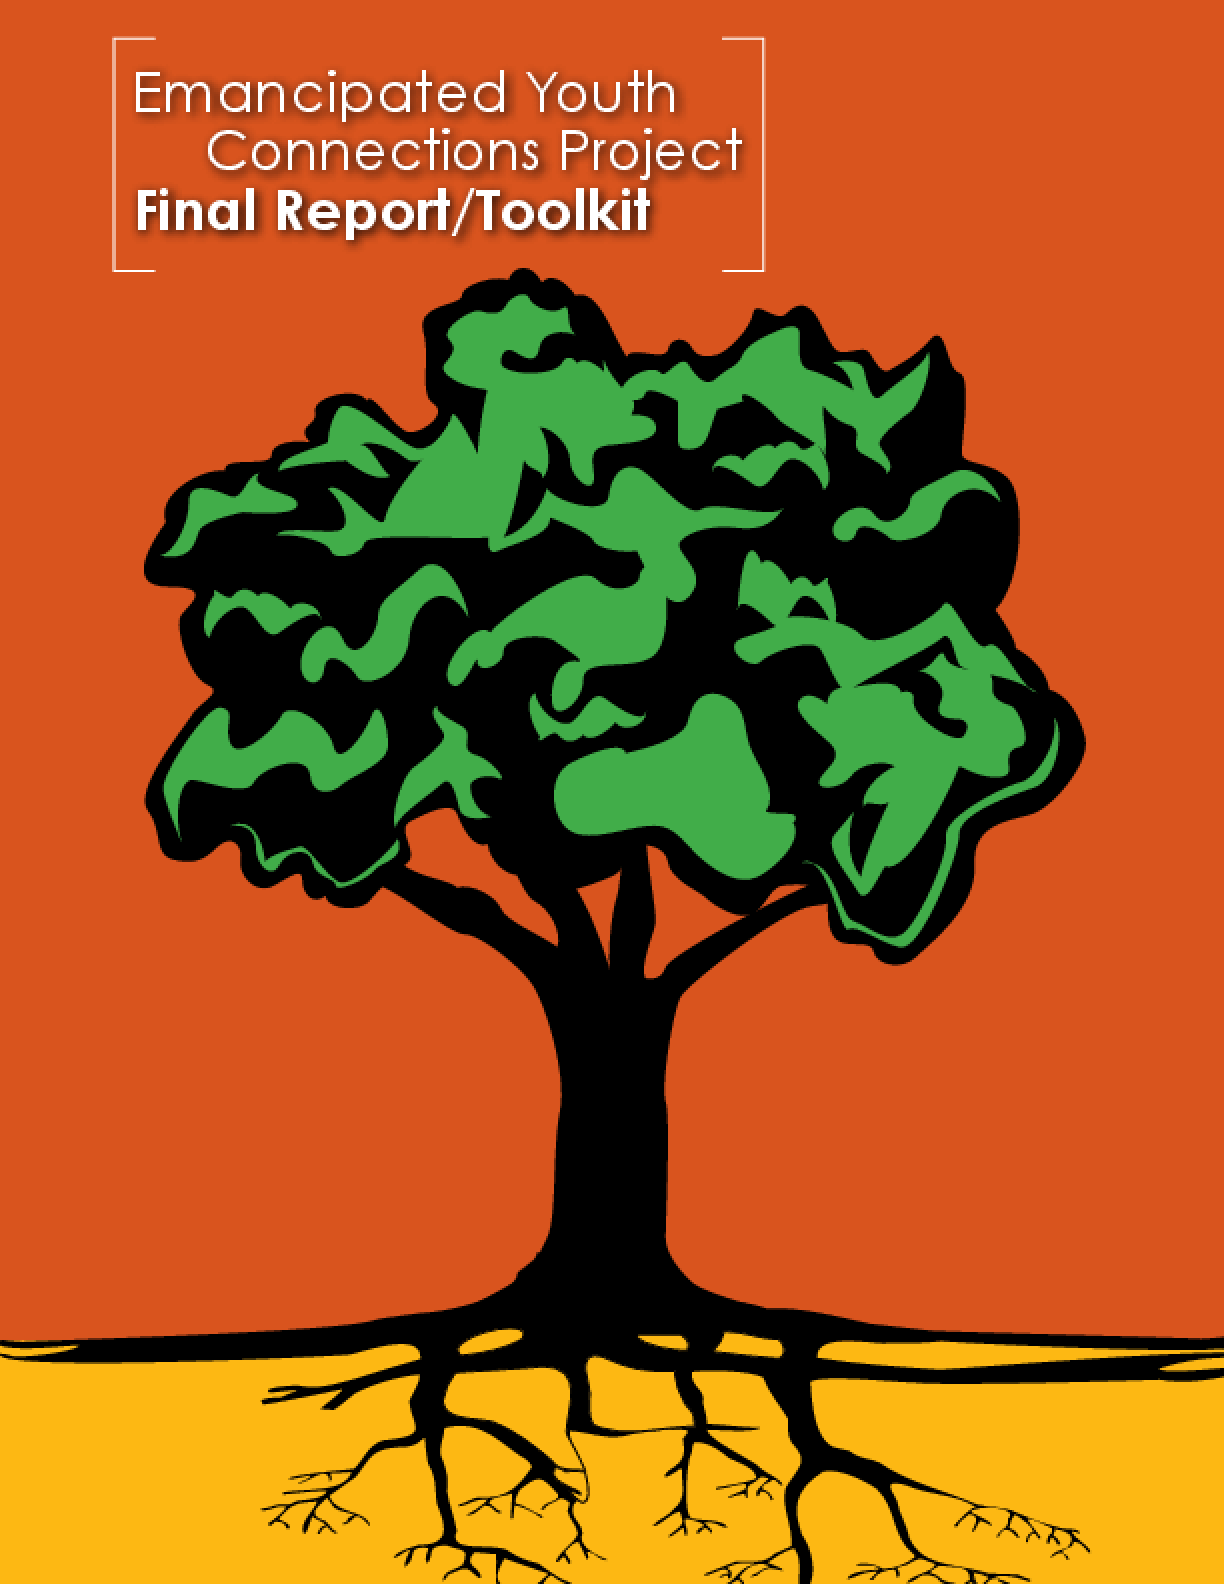 Emancipated Youth Connections Project Final Report/Toolkit